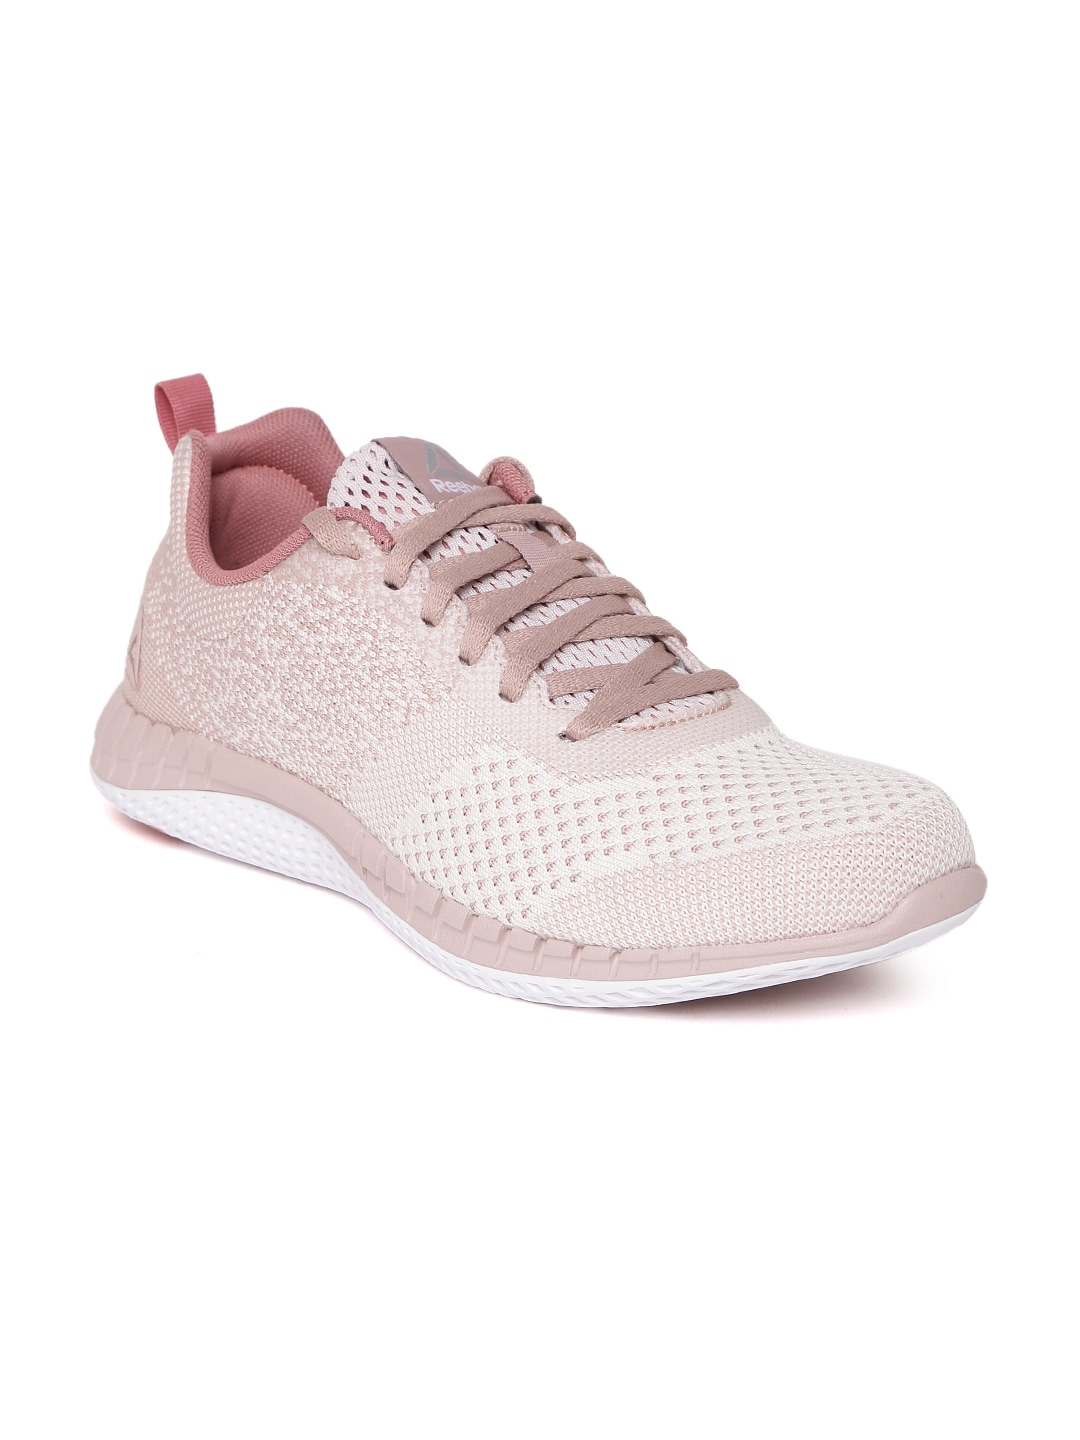 Reebok Pink Shoes - Buy Reebok Pink Shoes online in India 636e3605a